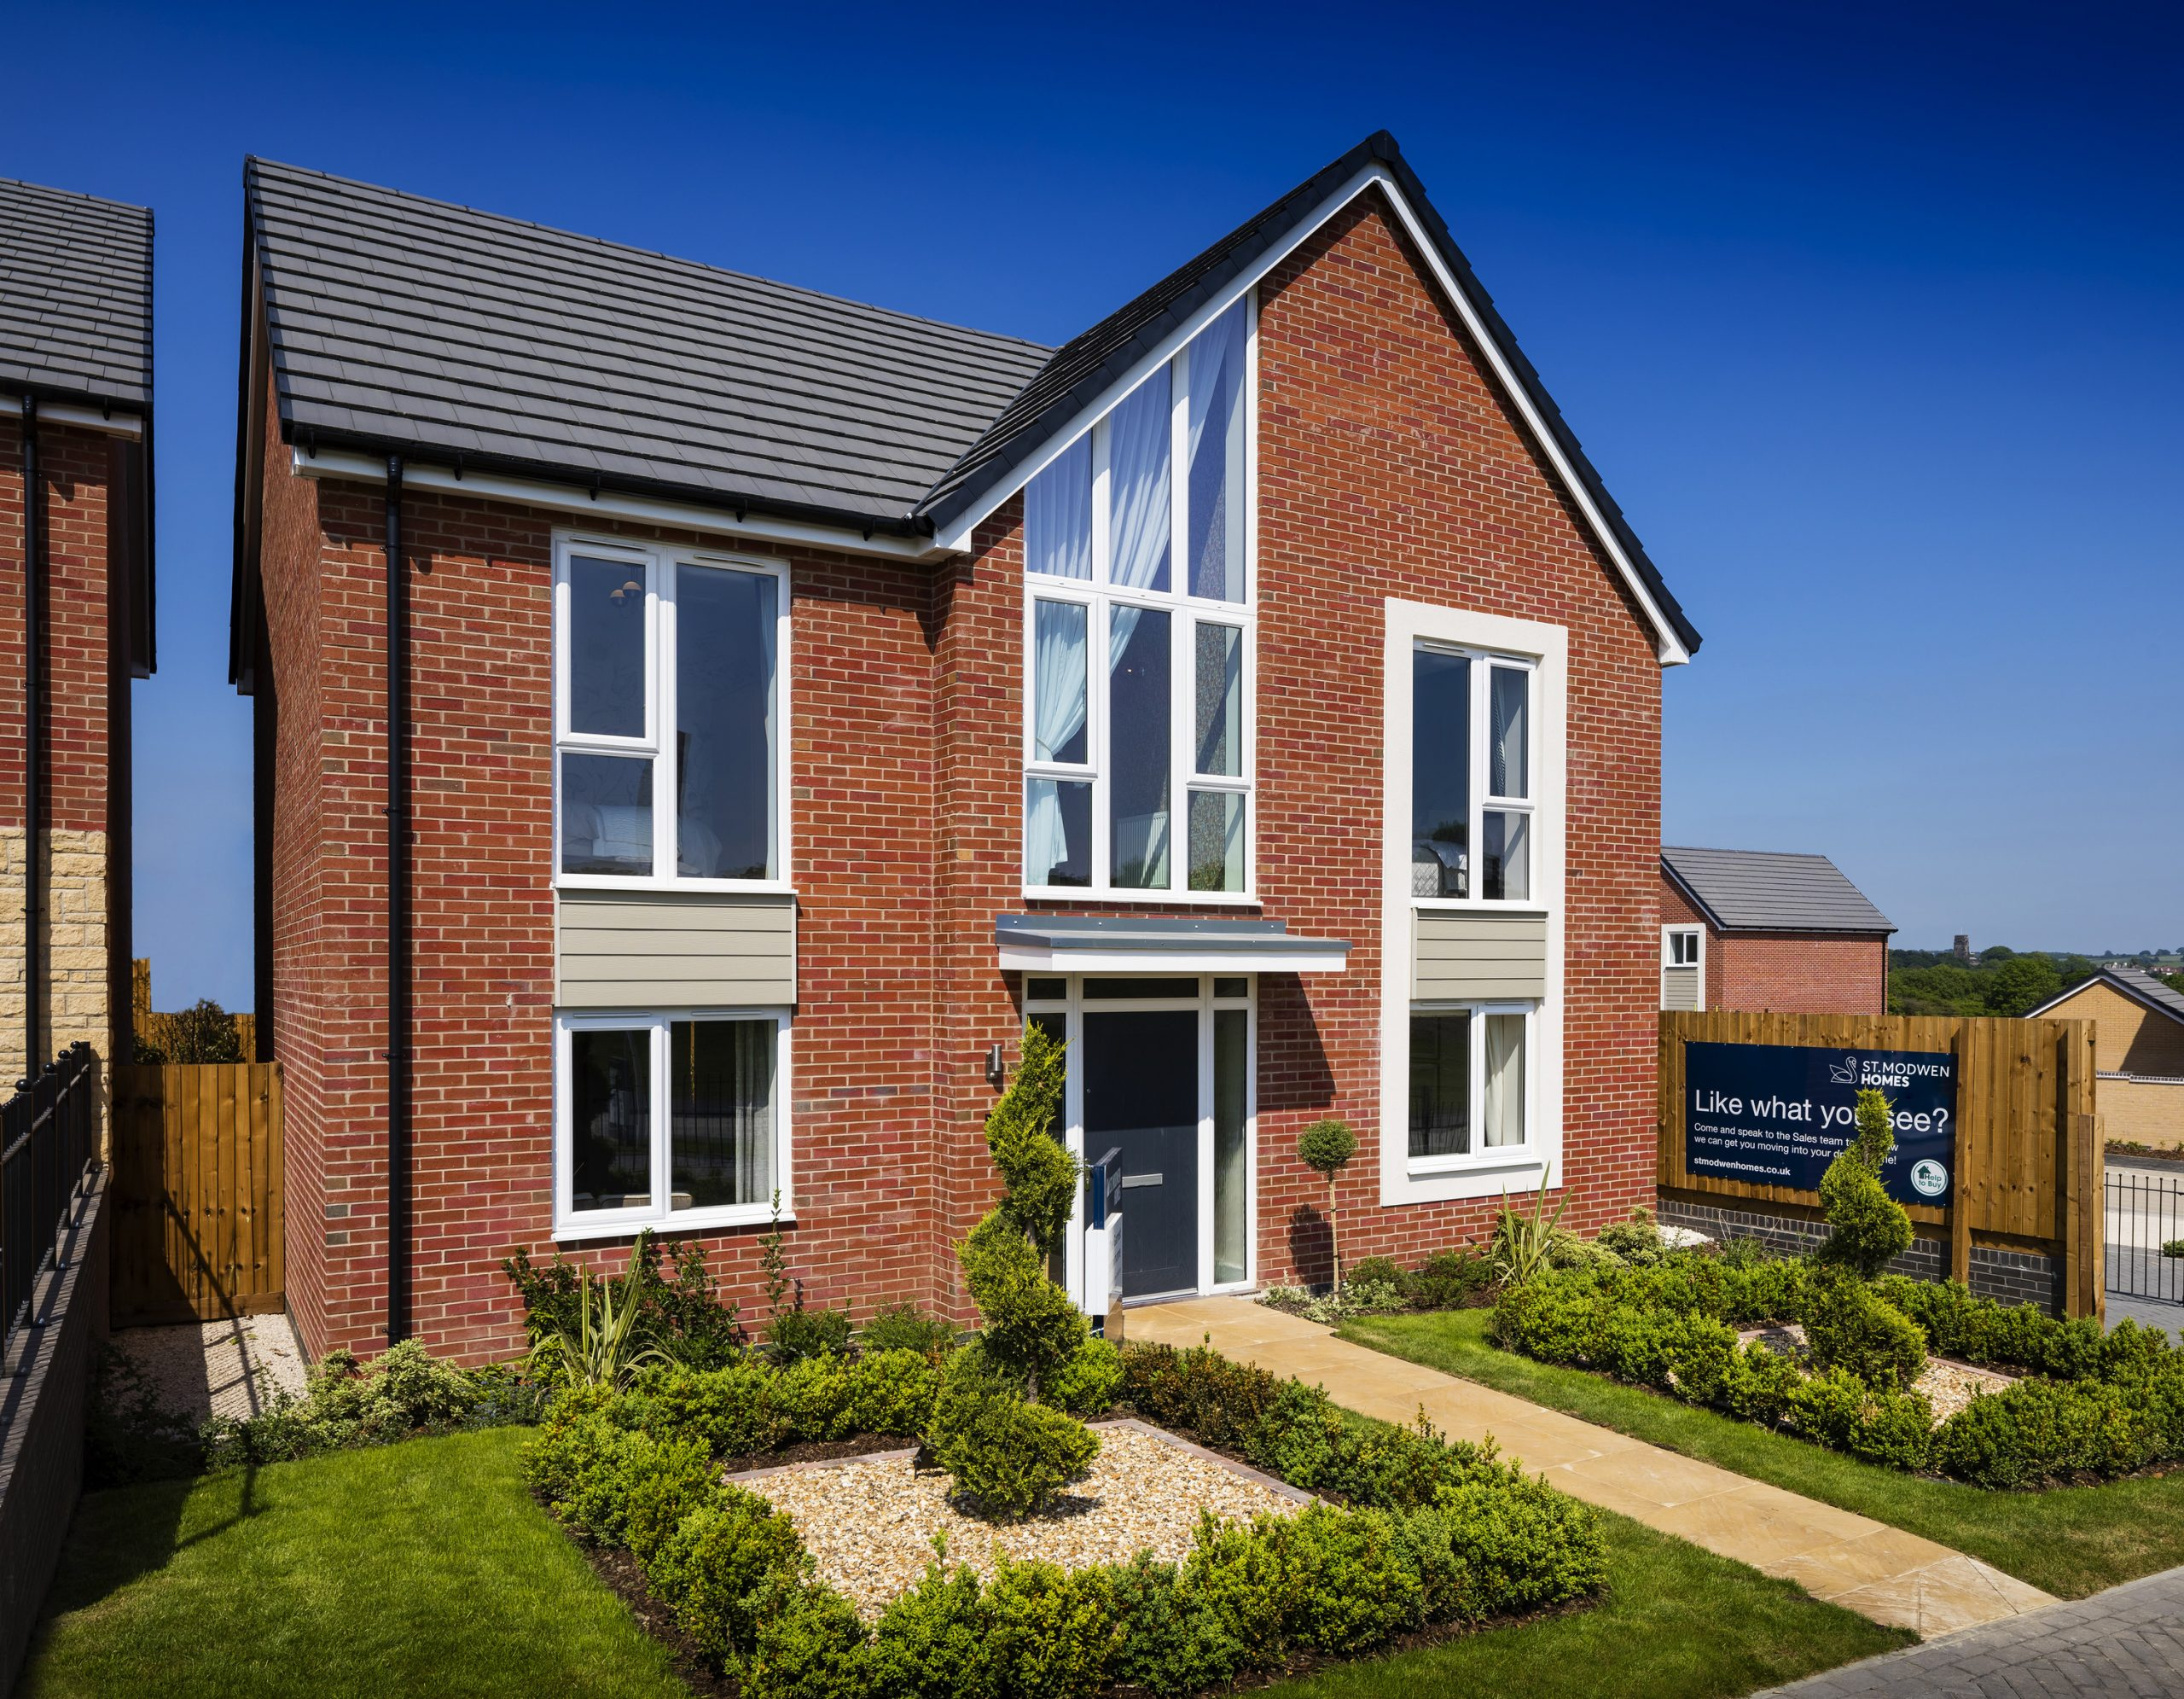 St. Modwen Homes sales volumes up 36% and on track to sell 1000 homes in 2019